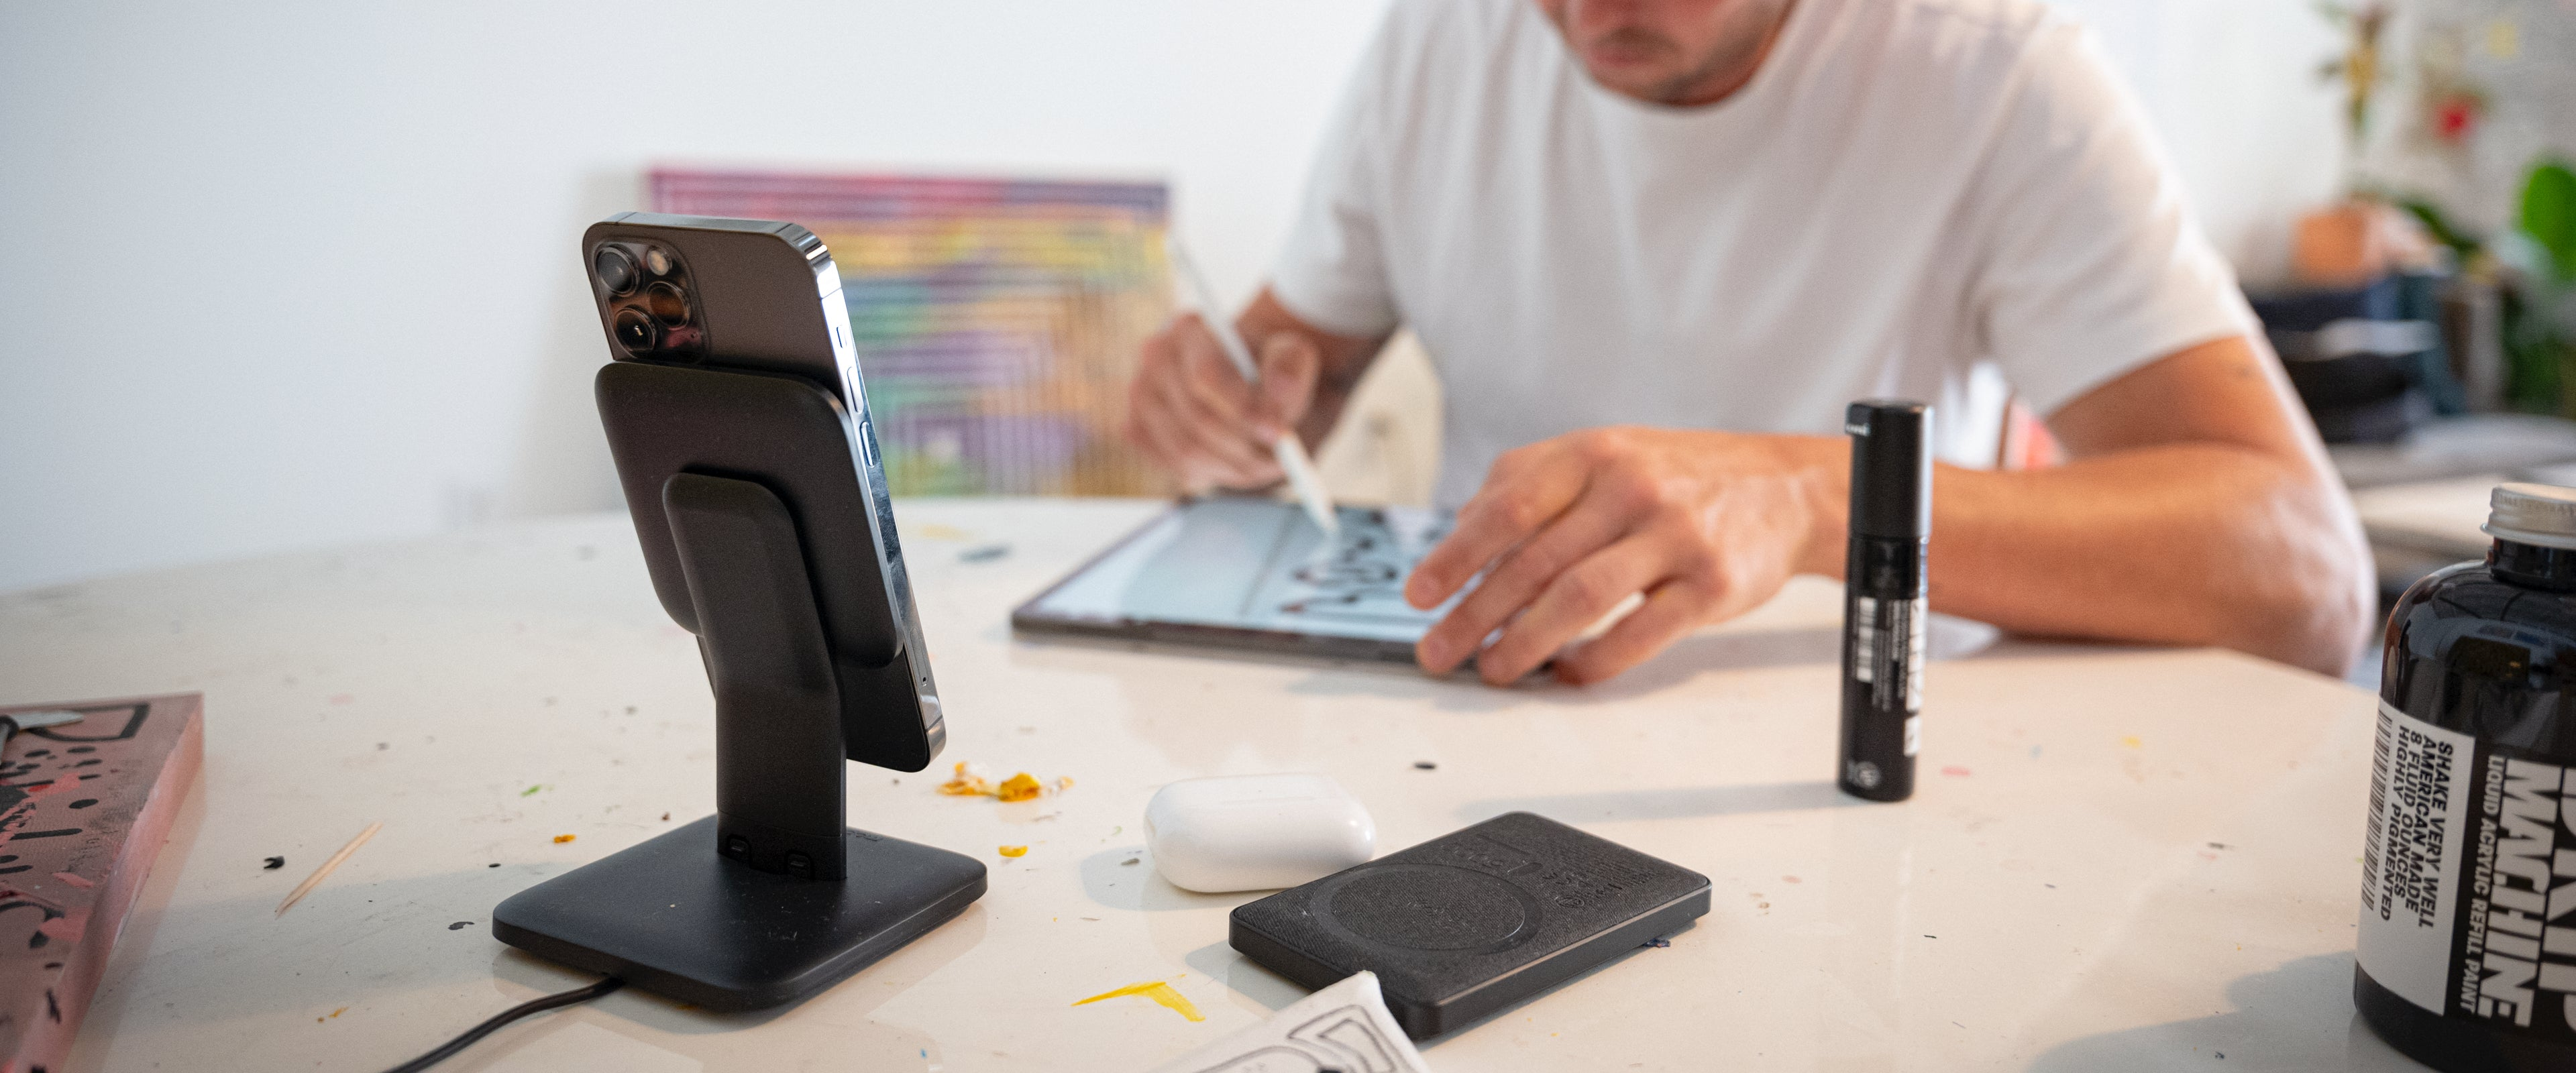 snap+ wireless stand on desk